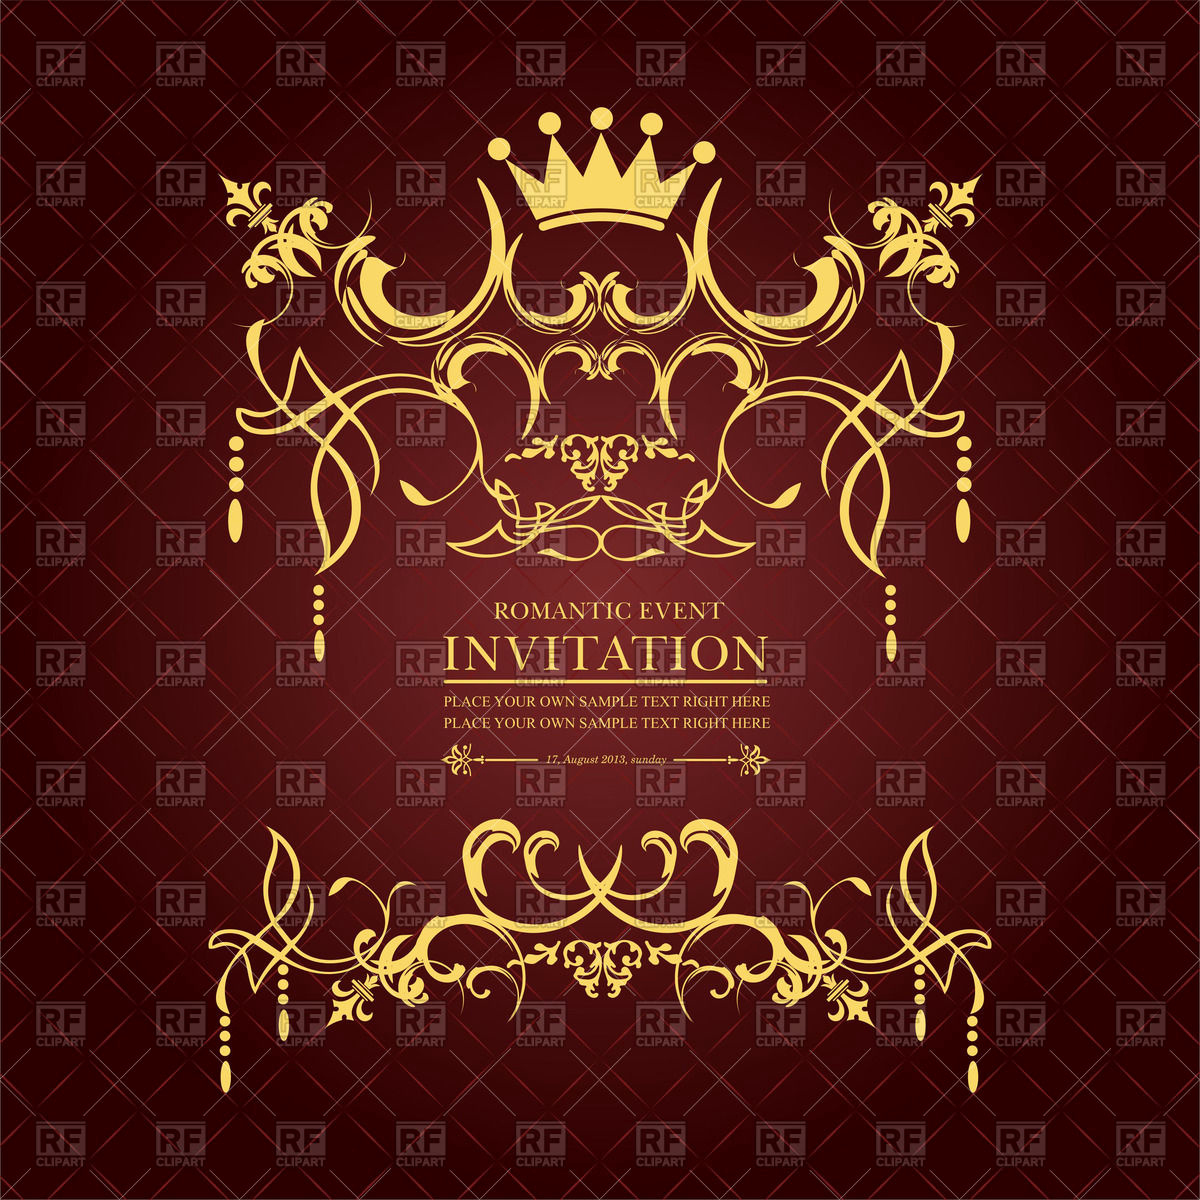 Royal Ball Invitation Template Free Beautiful Royal Invitation with Crown and Vintage ornament Vector